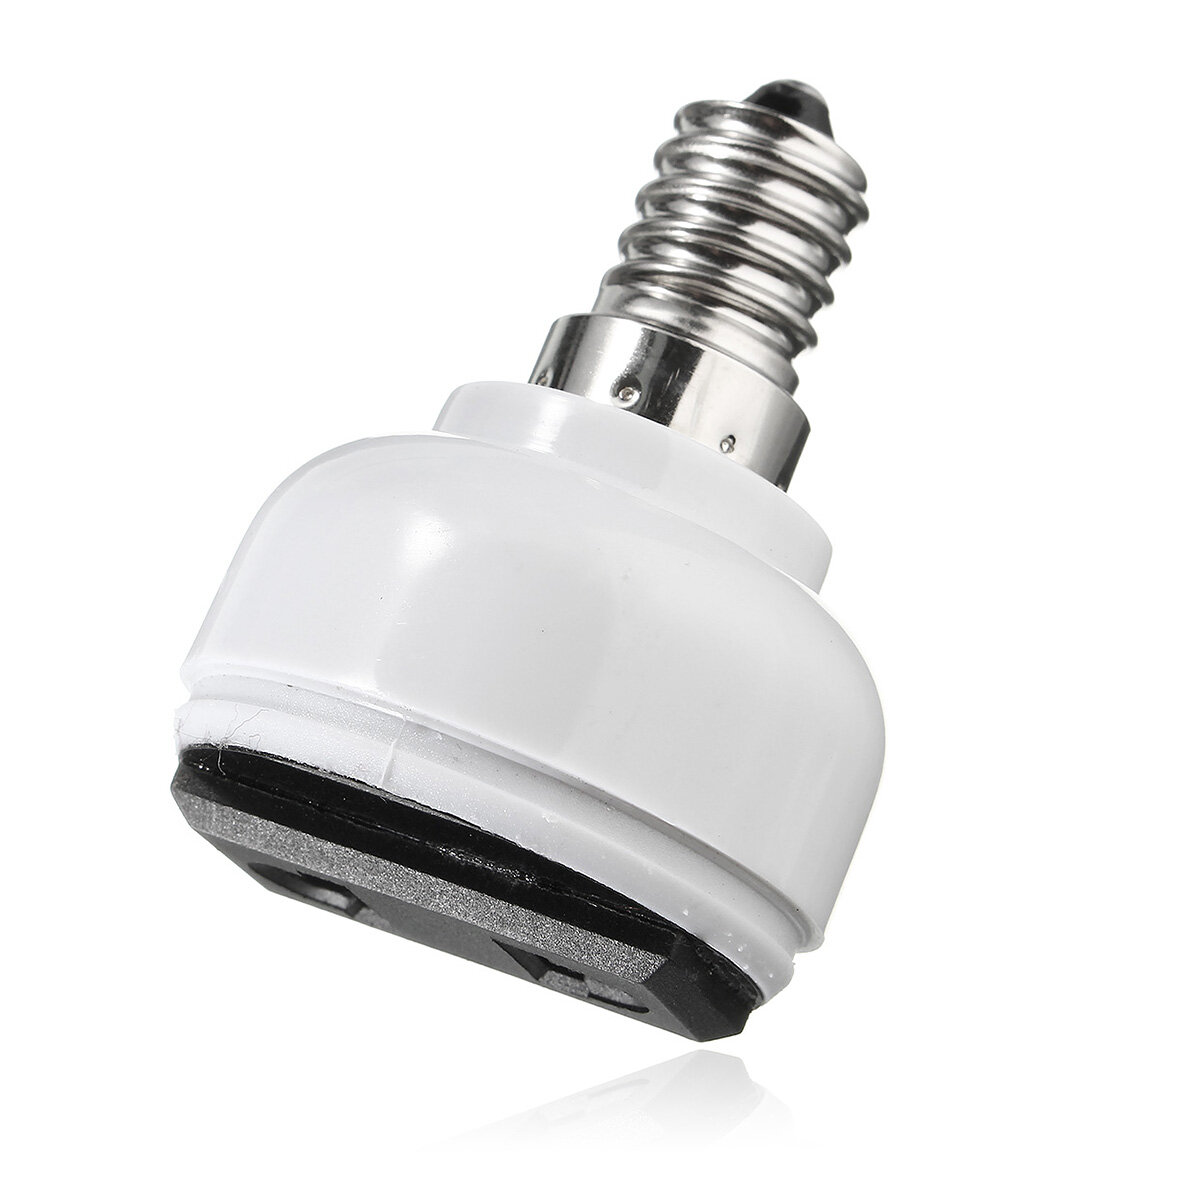 E27 E14 B22 B15d Lamp Bulb Adapter Socket Holder Convert To Us Eu Power Female Outlet E27 E14 B22 B15d Lamp Bulb Adapter Socket Holder Convert